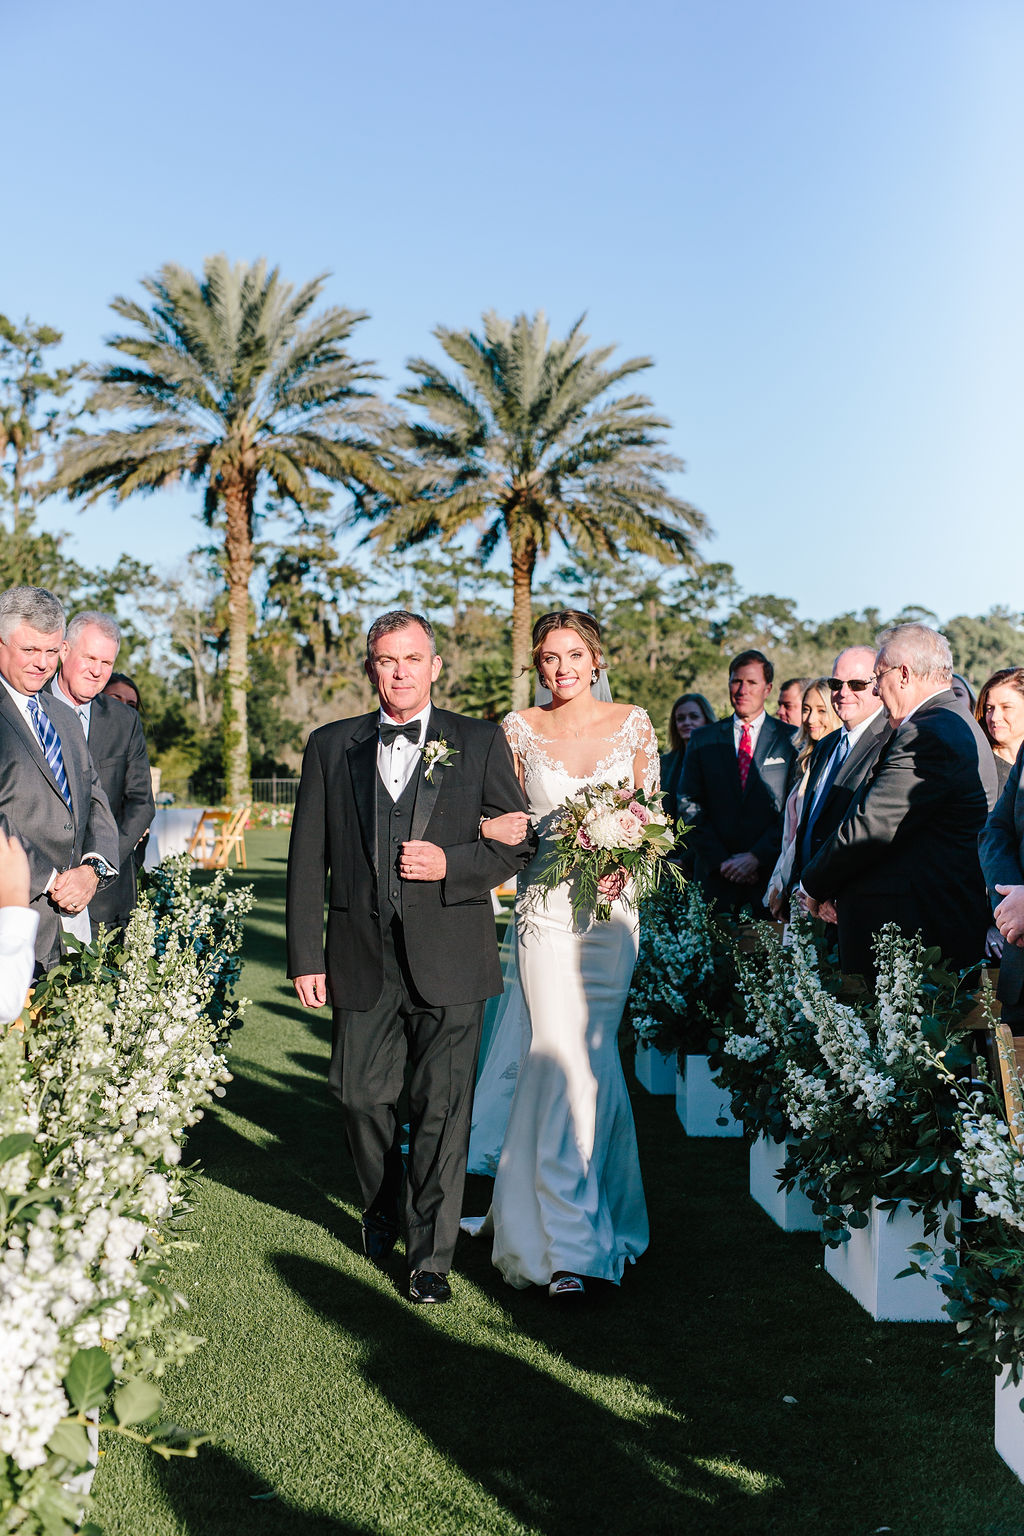 Bluegrass Chic - Bride with father walking down aisle